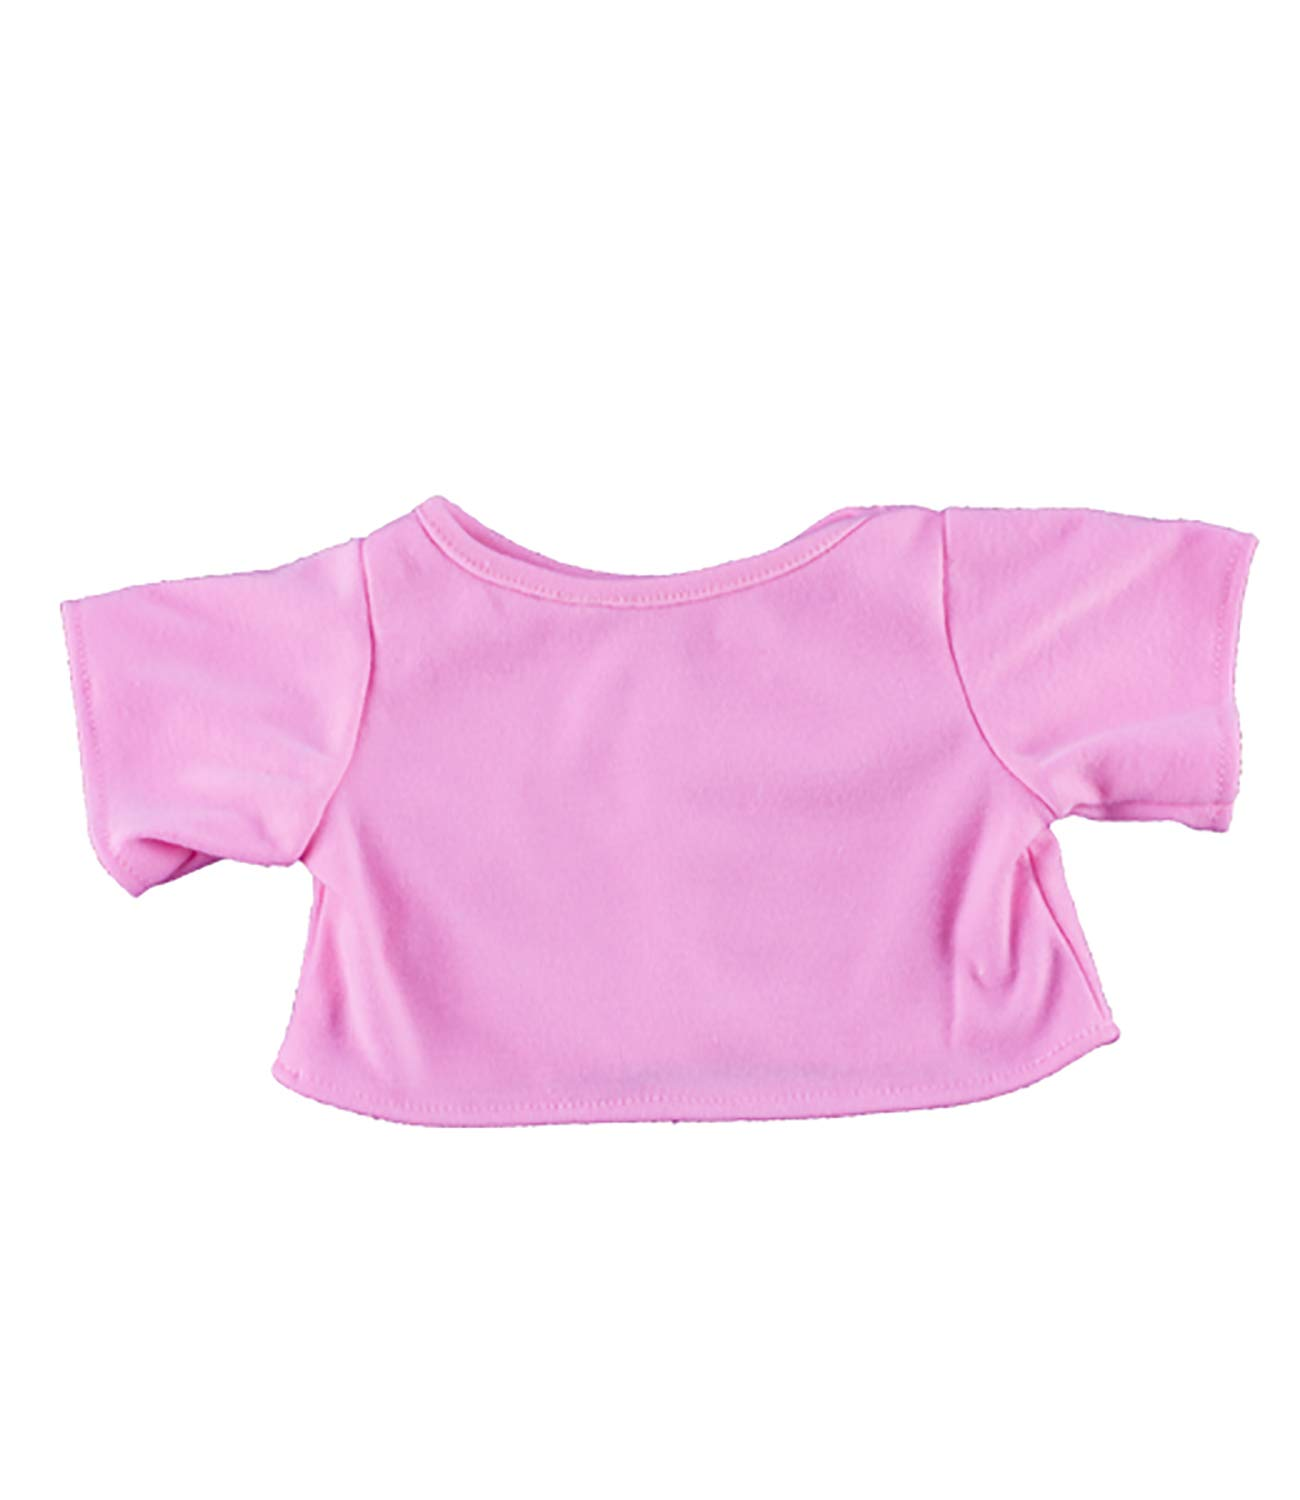 Vermont Teddy Bears Pink T-Shirt Outfit Teddy Bear Clothes Fits Most 14-18 Build-a-bear and Make Your Own Stuffed Animals Teddy Mountain SG/_B007P1IJ9Q/_US